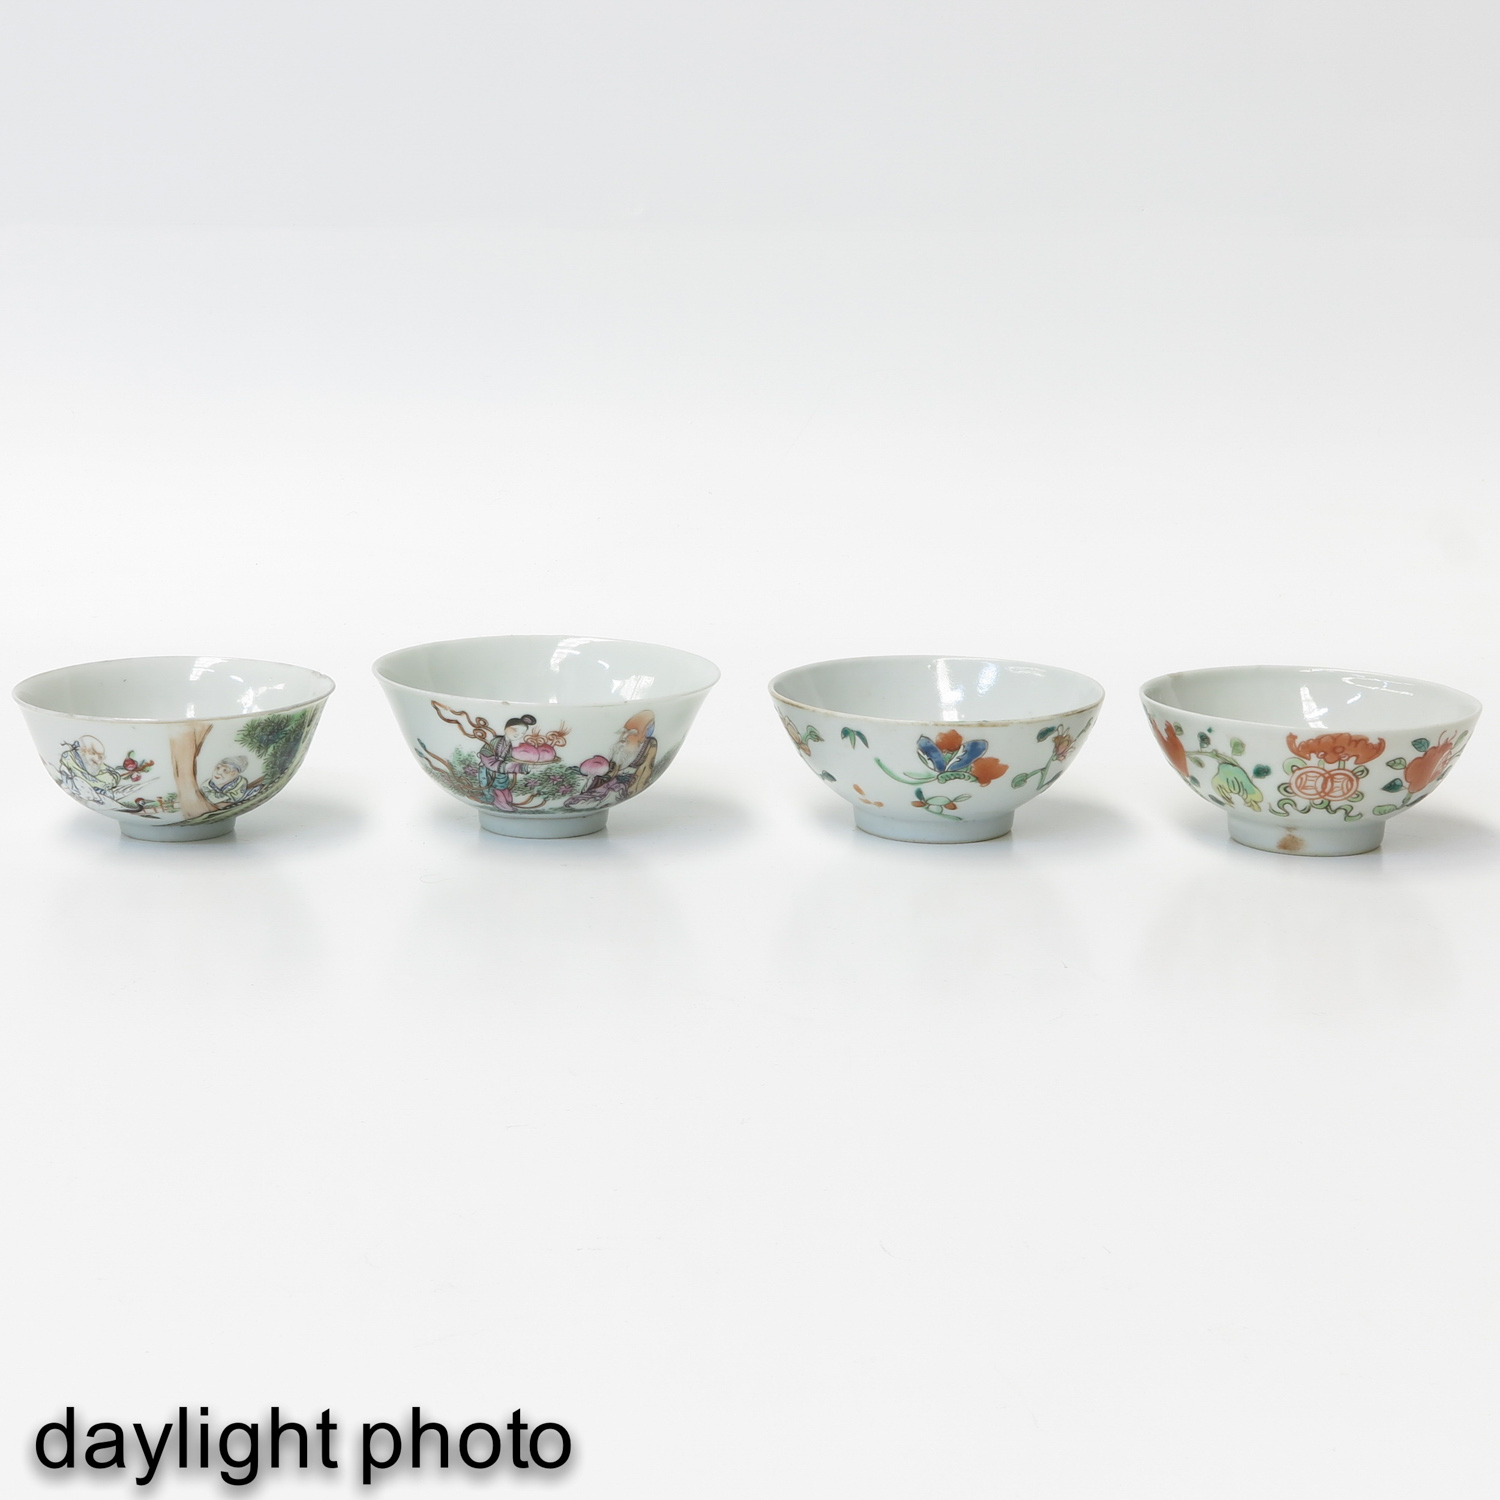 A Collection of 4 Polychrome Bowls - Image 7 of 10